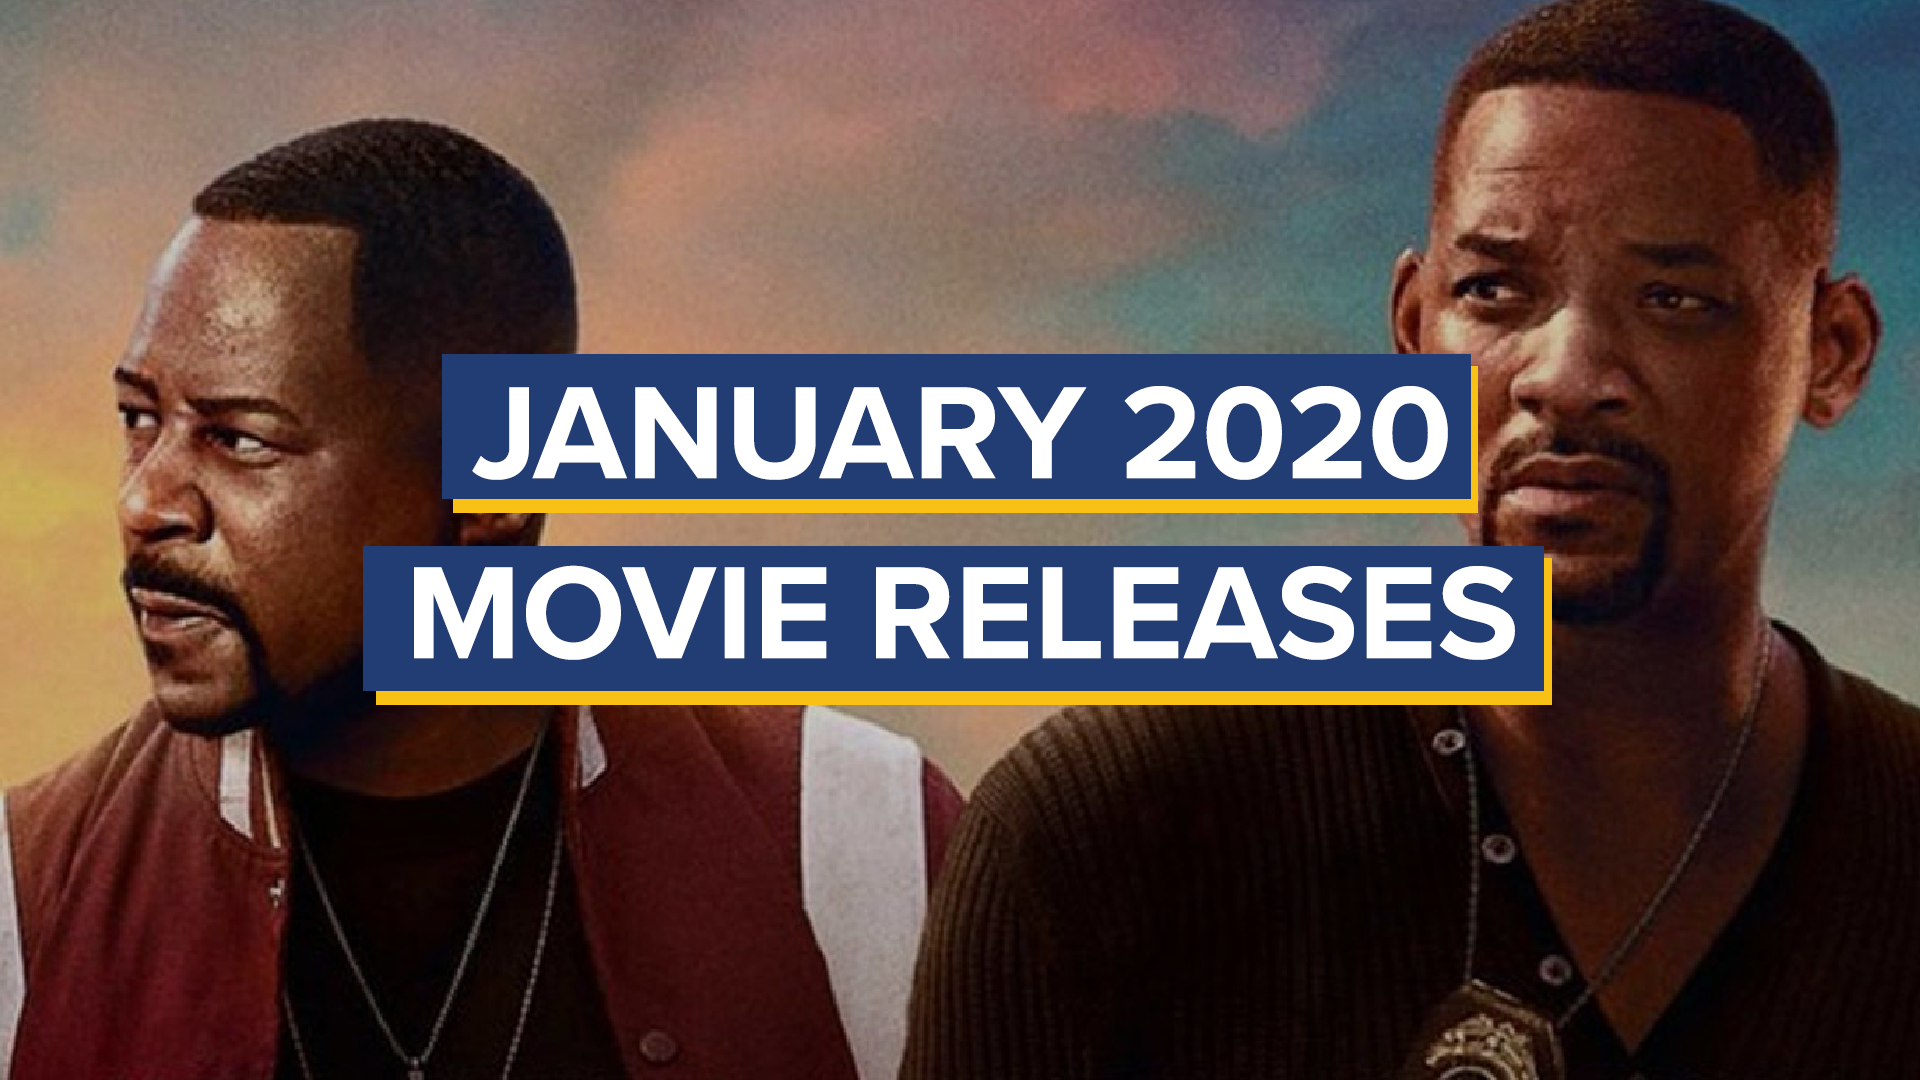 Movies Coming to Theaters in January 2020 - ComicBook.com screen capture